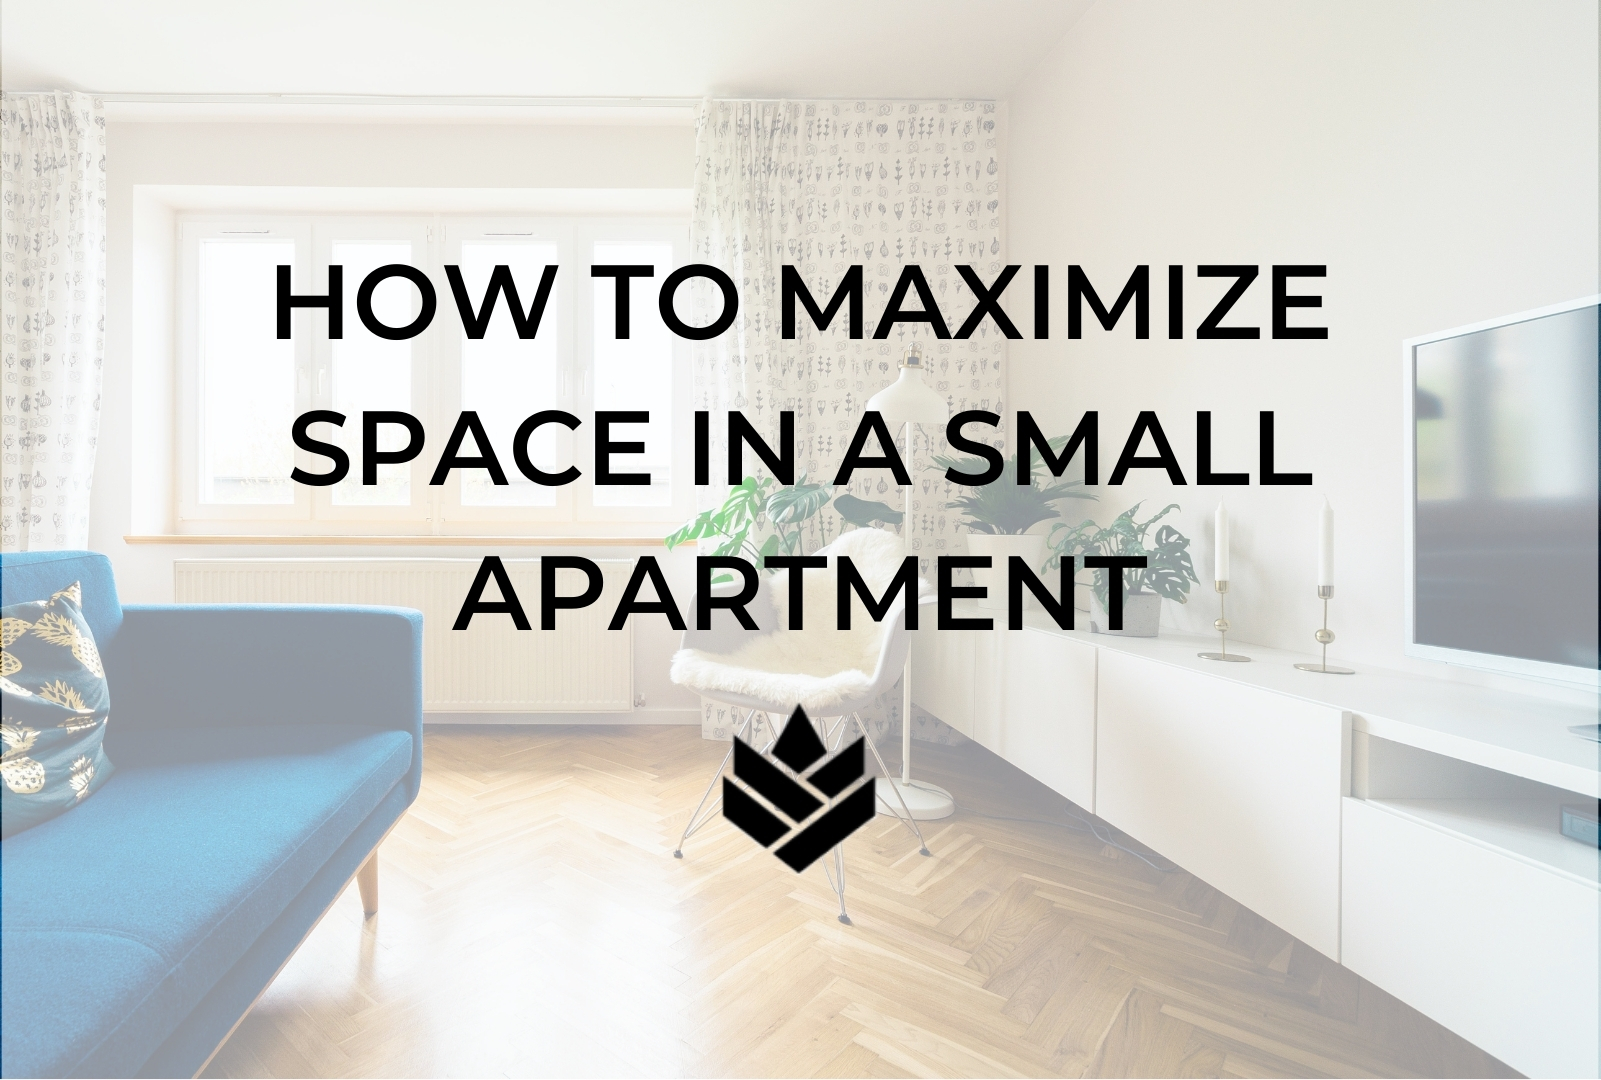 How to Maximize Space in a Small Apartment